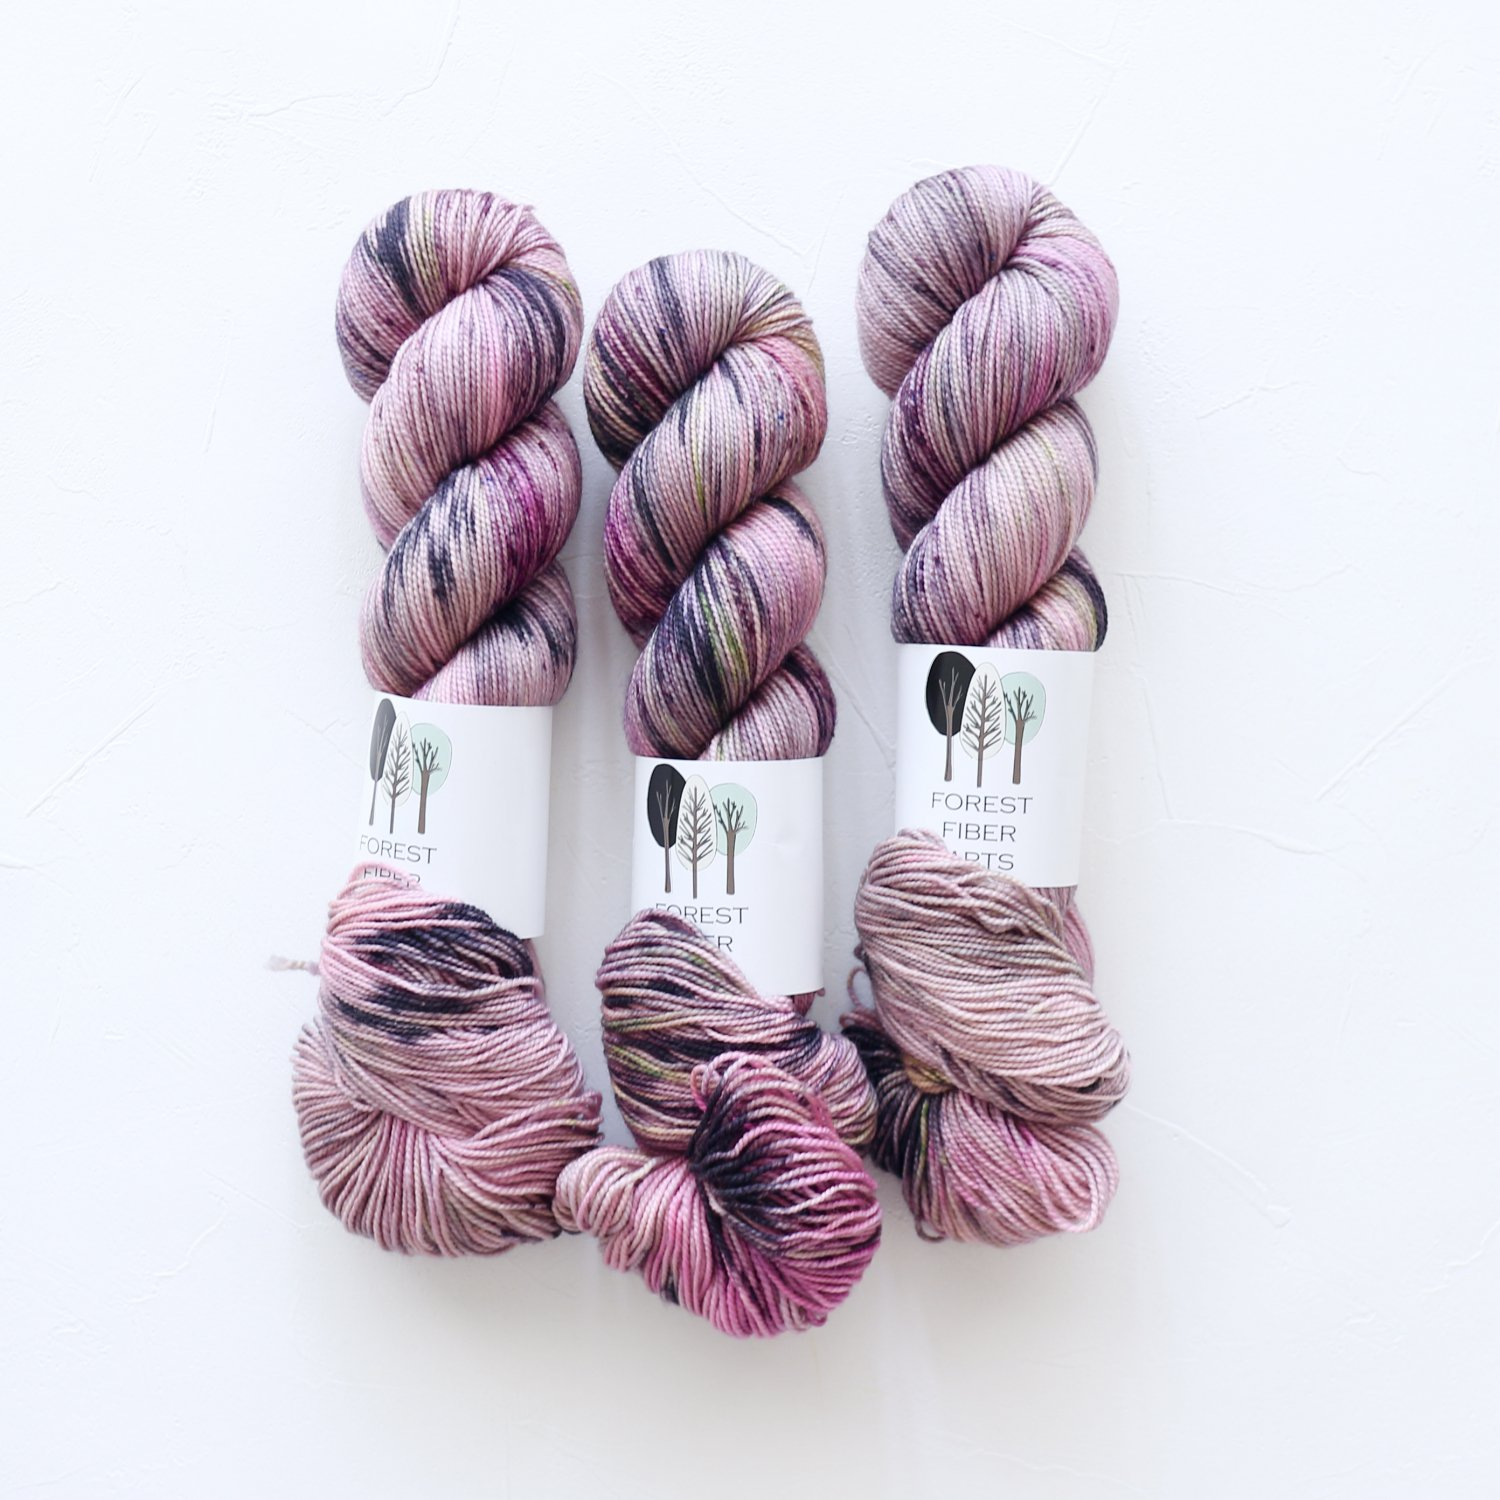 【FOREST FIBER ARTS】<br>MERINO/NYLON 2 PLY SOCK<br>Flash Mob